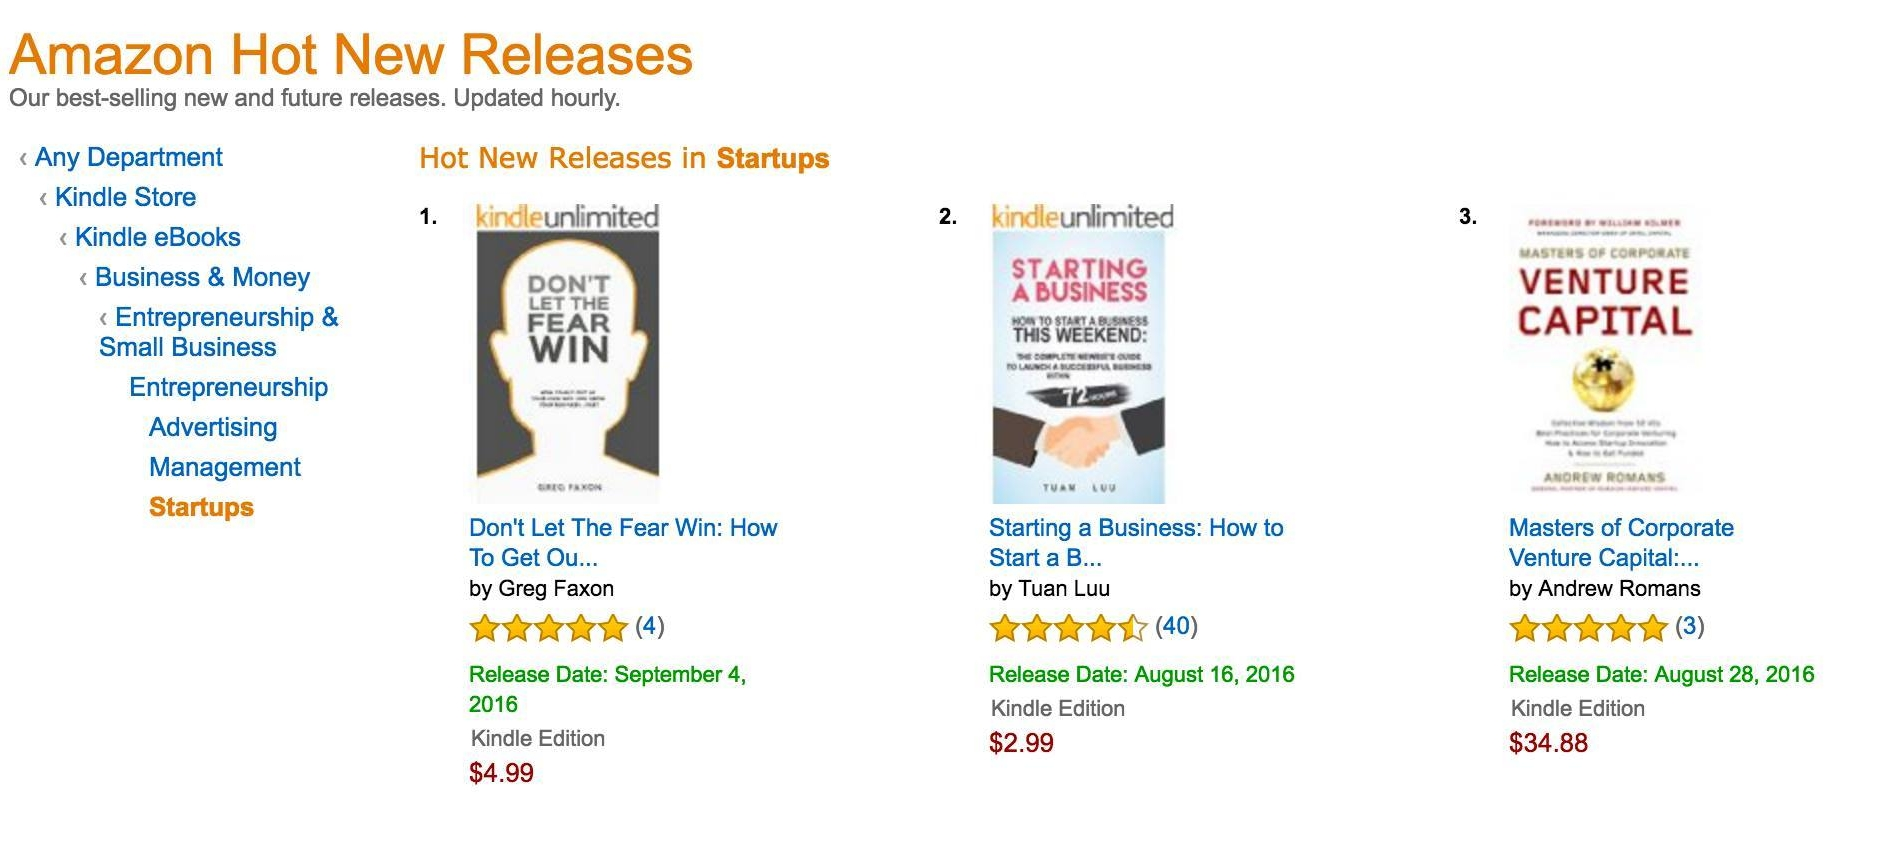 Don't Let The Fear Win  became the #1 Hot Release for Startups on the day it launched. Thank you to everyone who helped my write, launch, and promote the book and to everyone who picked up a copy.